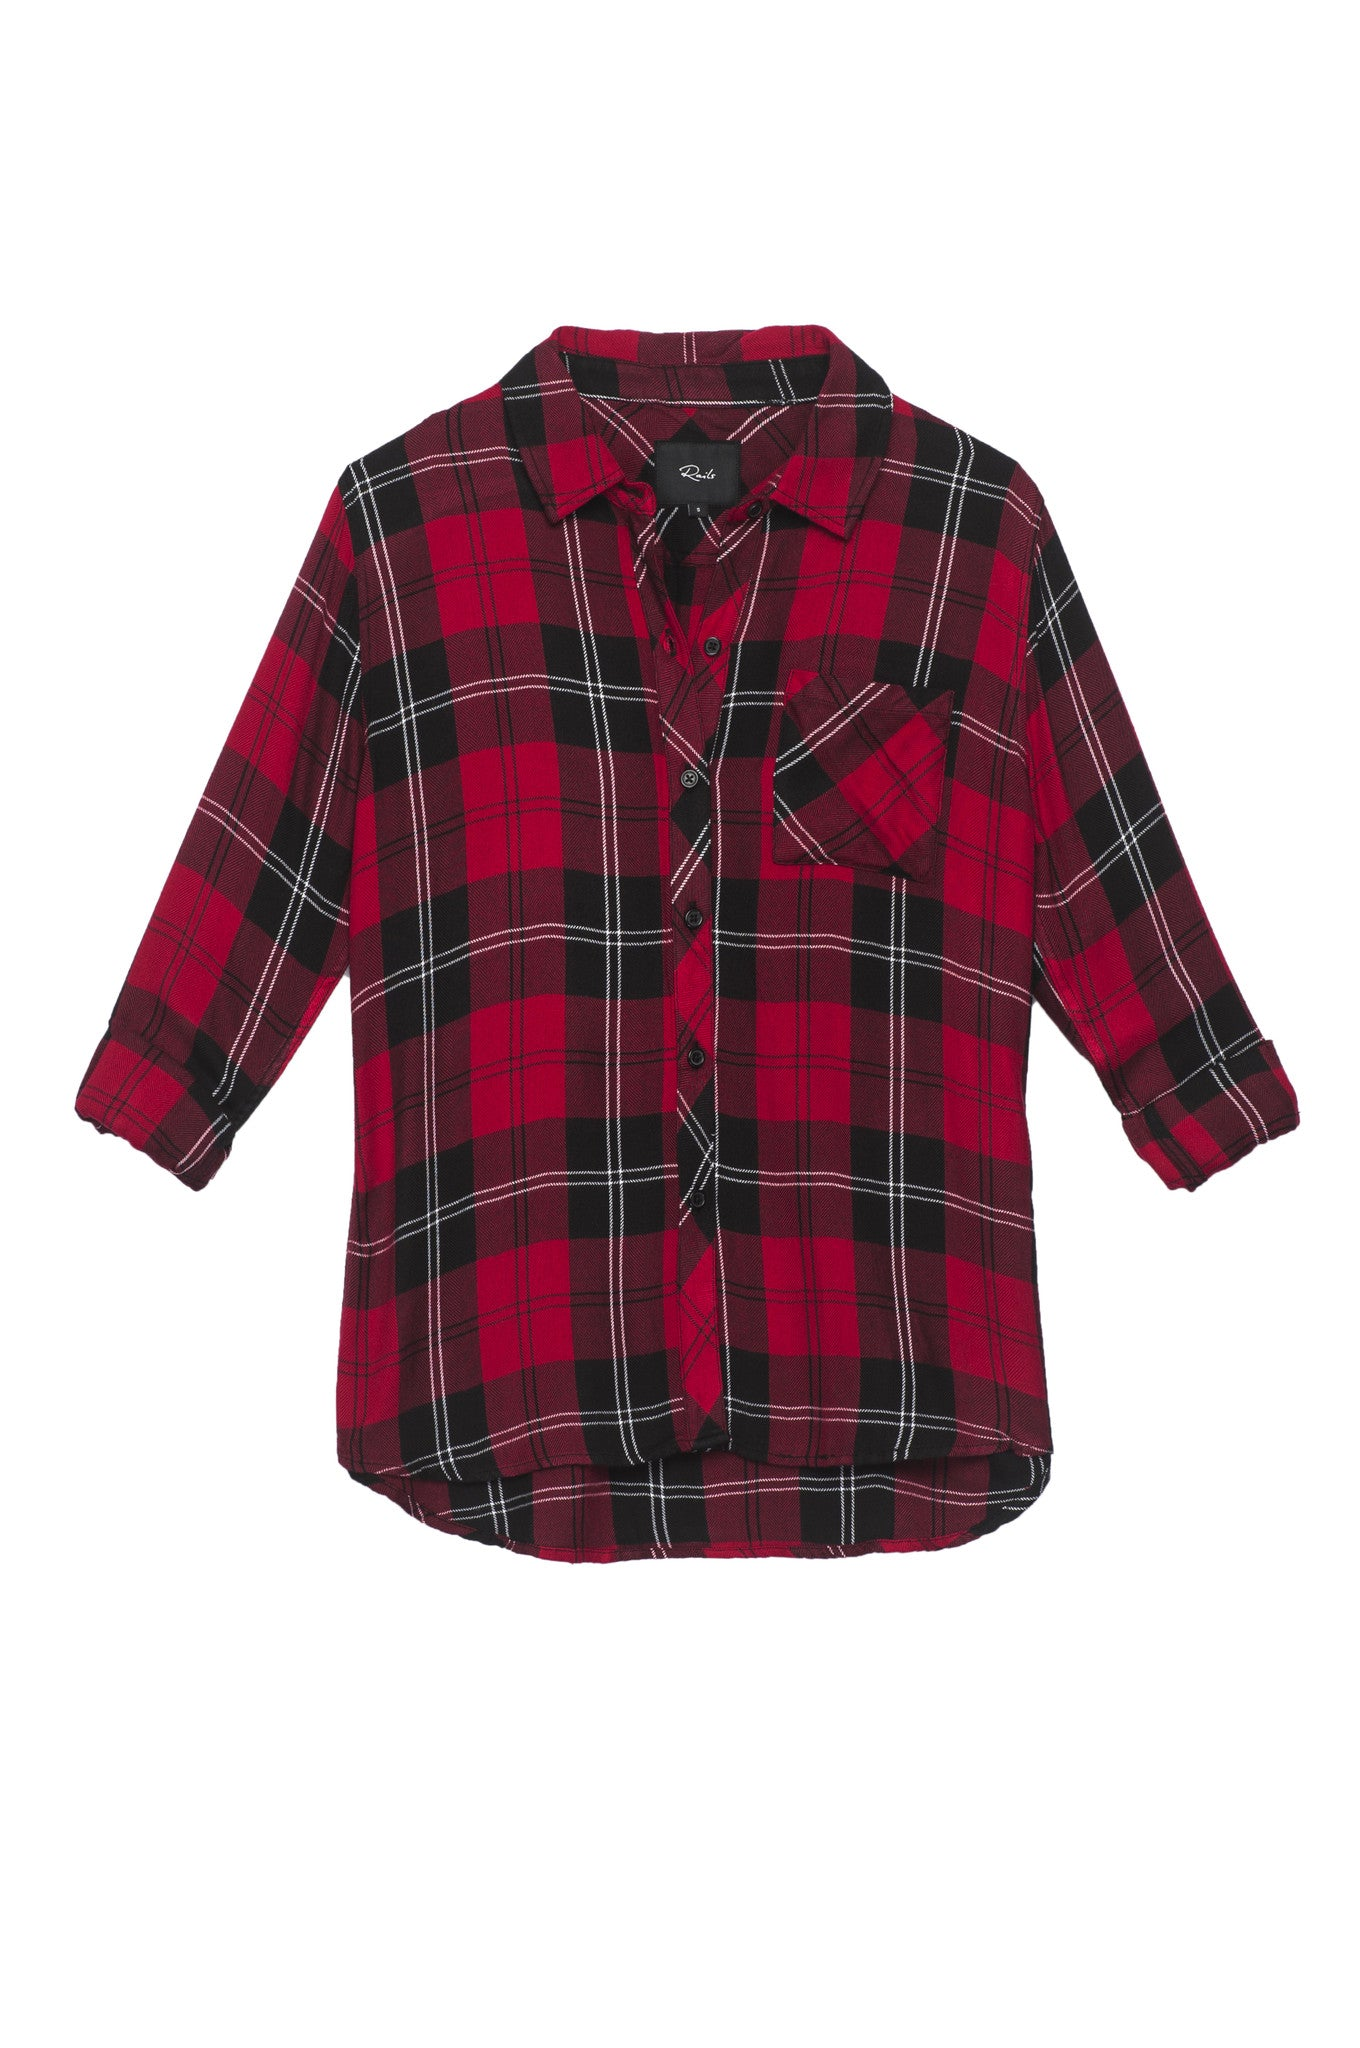 Hunter - Red Tartan